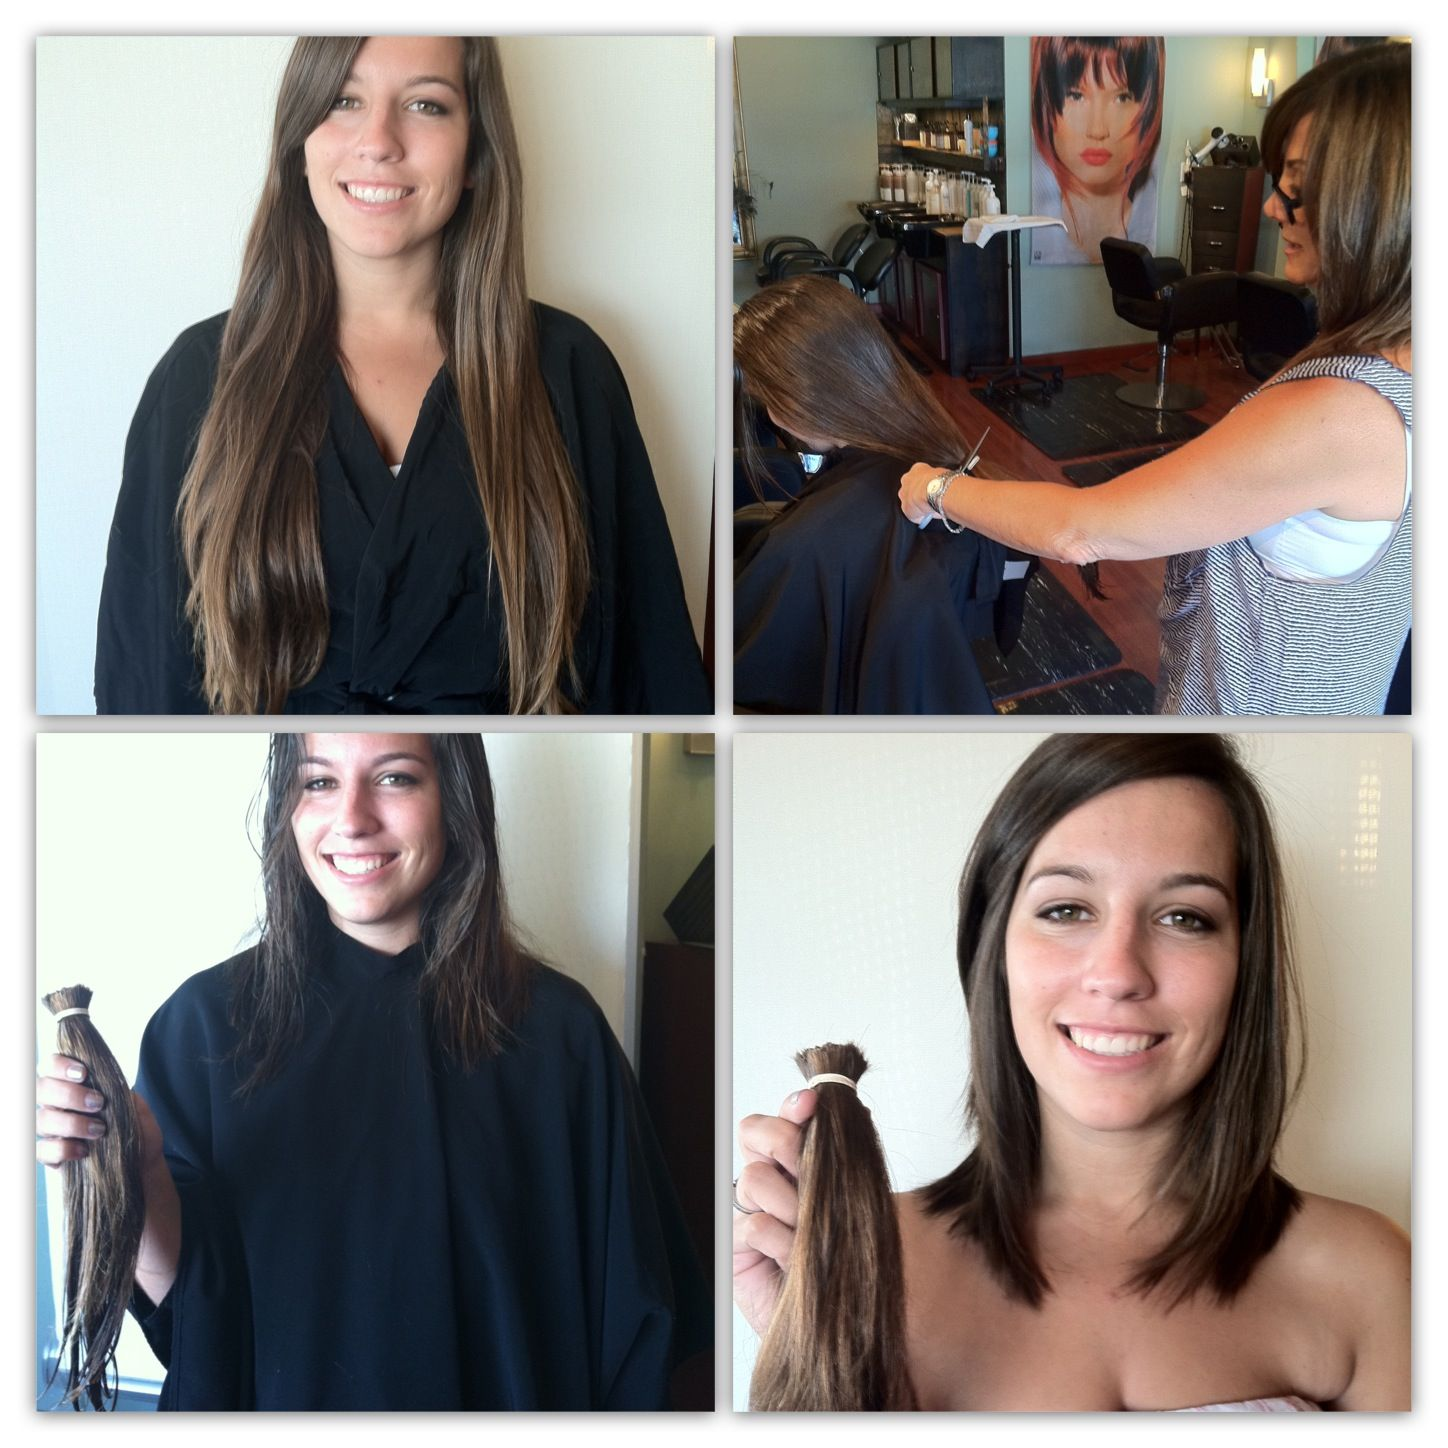 locks of love free haircut salons locks of before amp after haircuts 2731 | 9a12e7d4cf5163ea69fb609dcd46f7a5